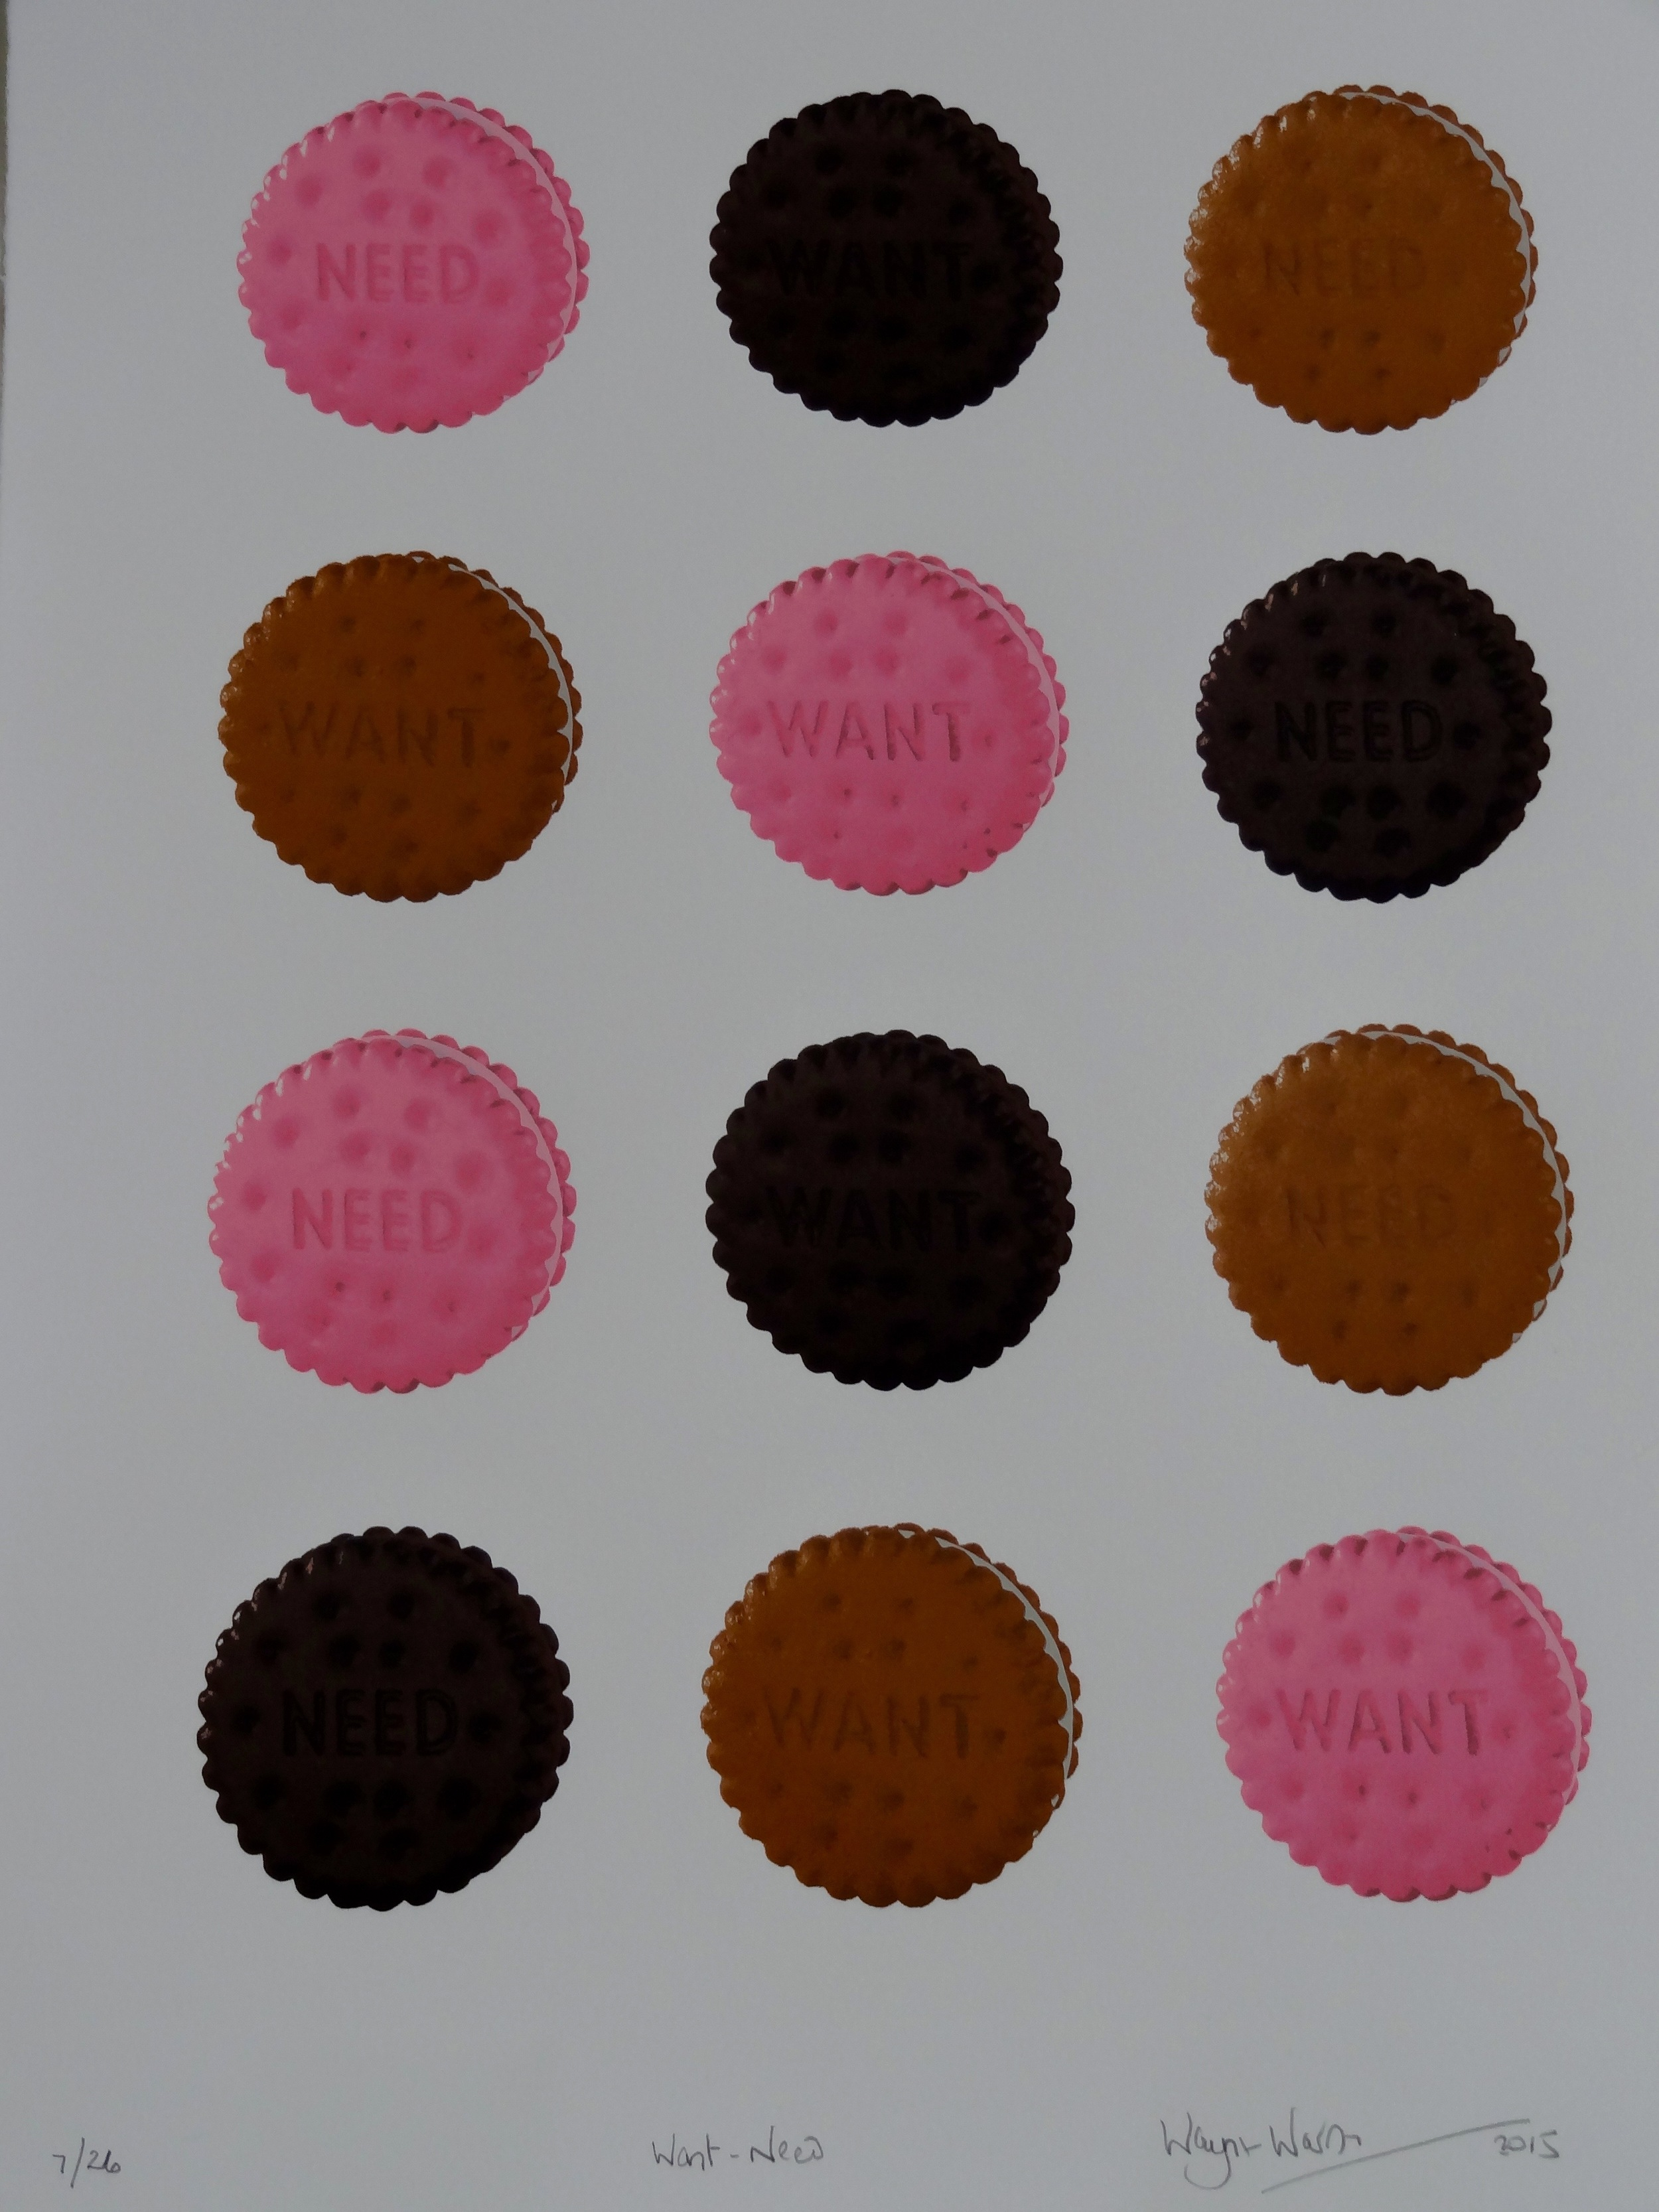 Mixed media screenprint of colorful biscuits